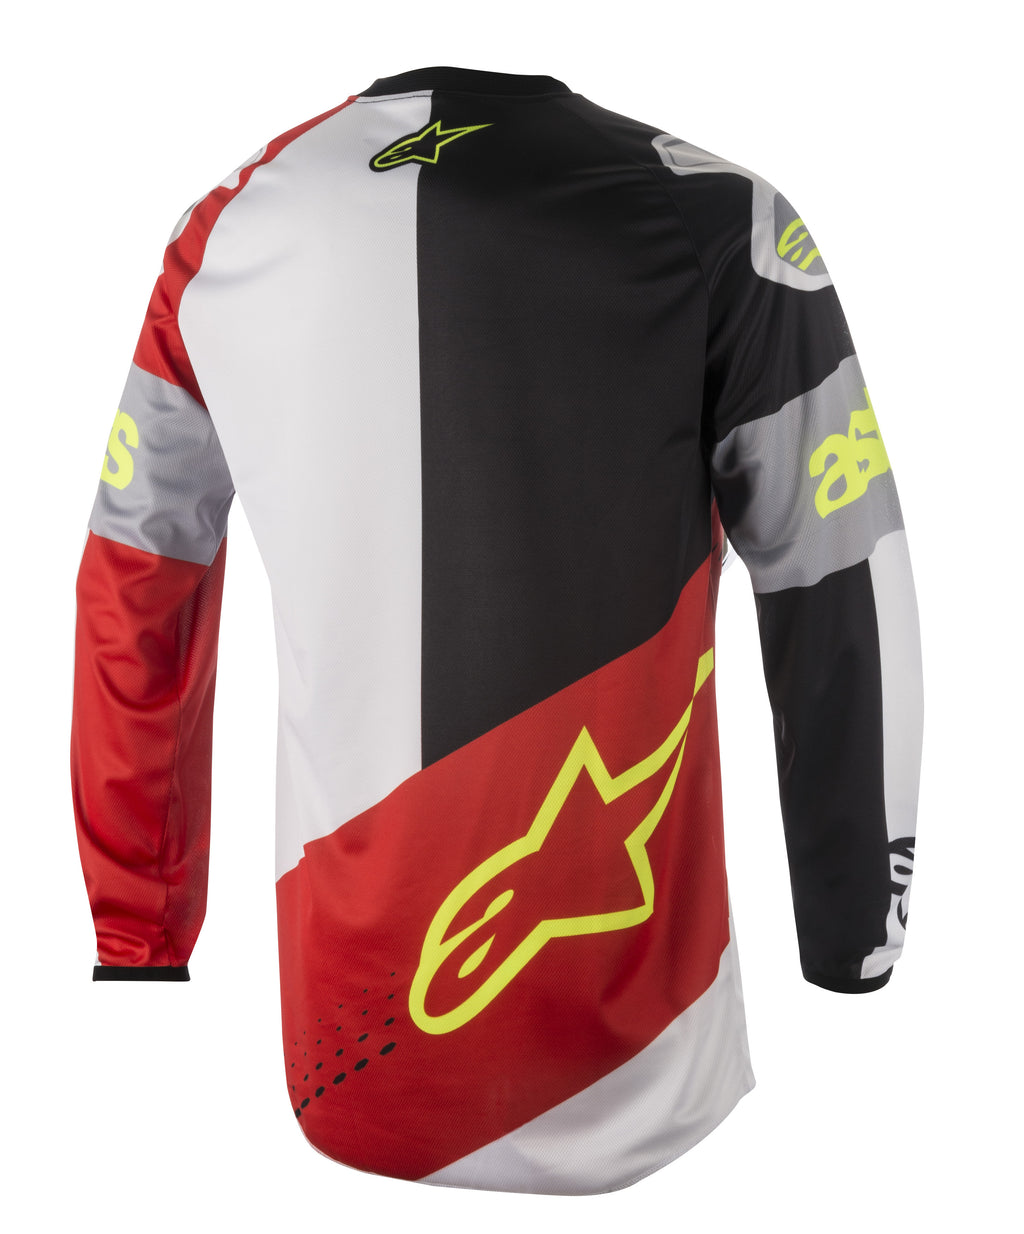 2018 Alpinestars Flagship Racer Jersey Red White Black OCT17